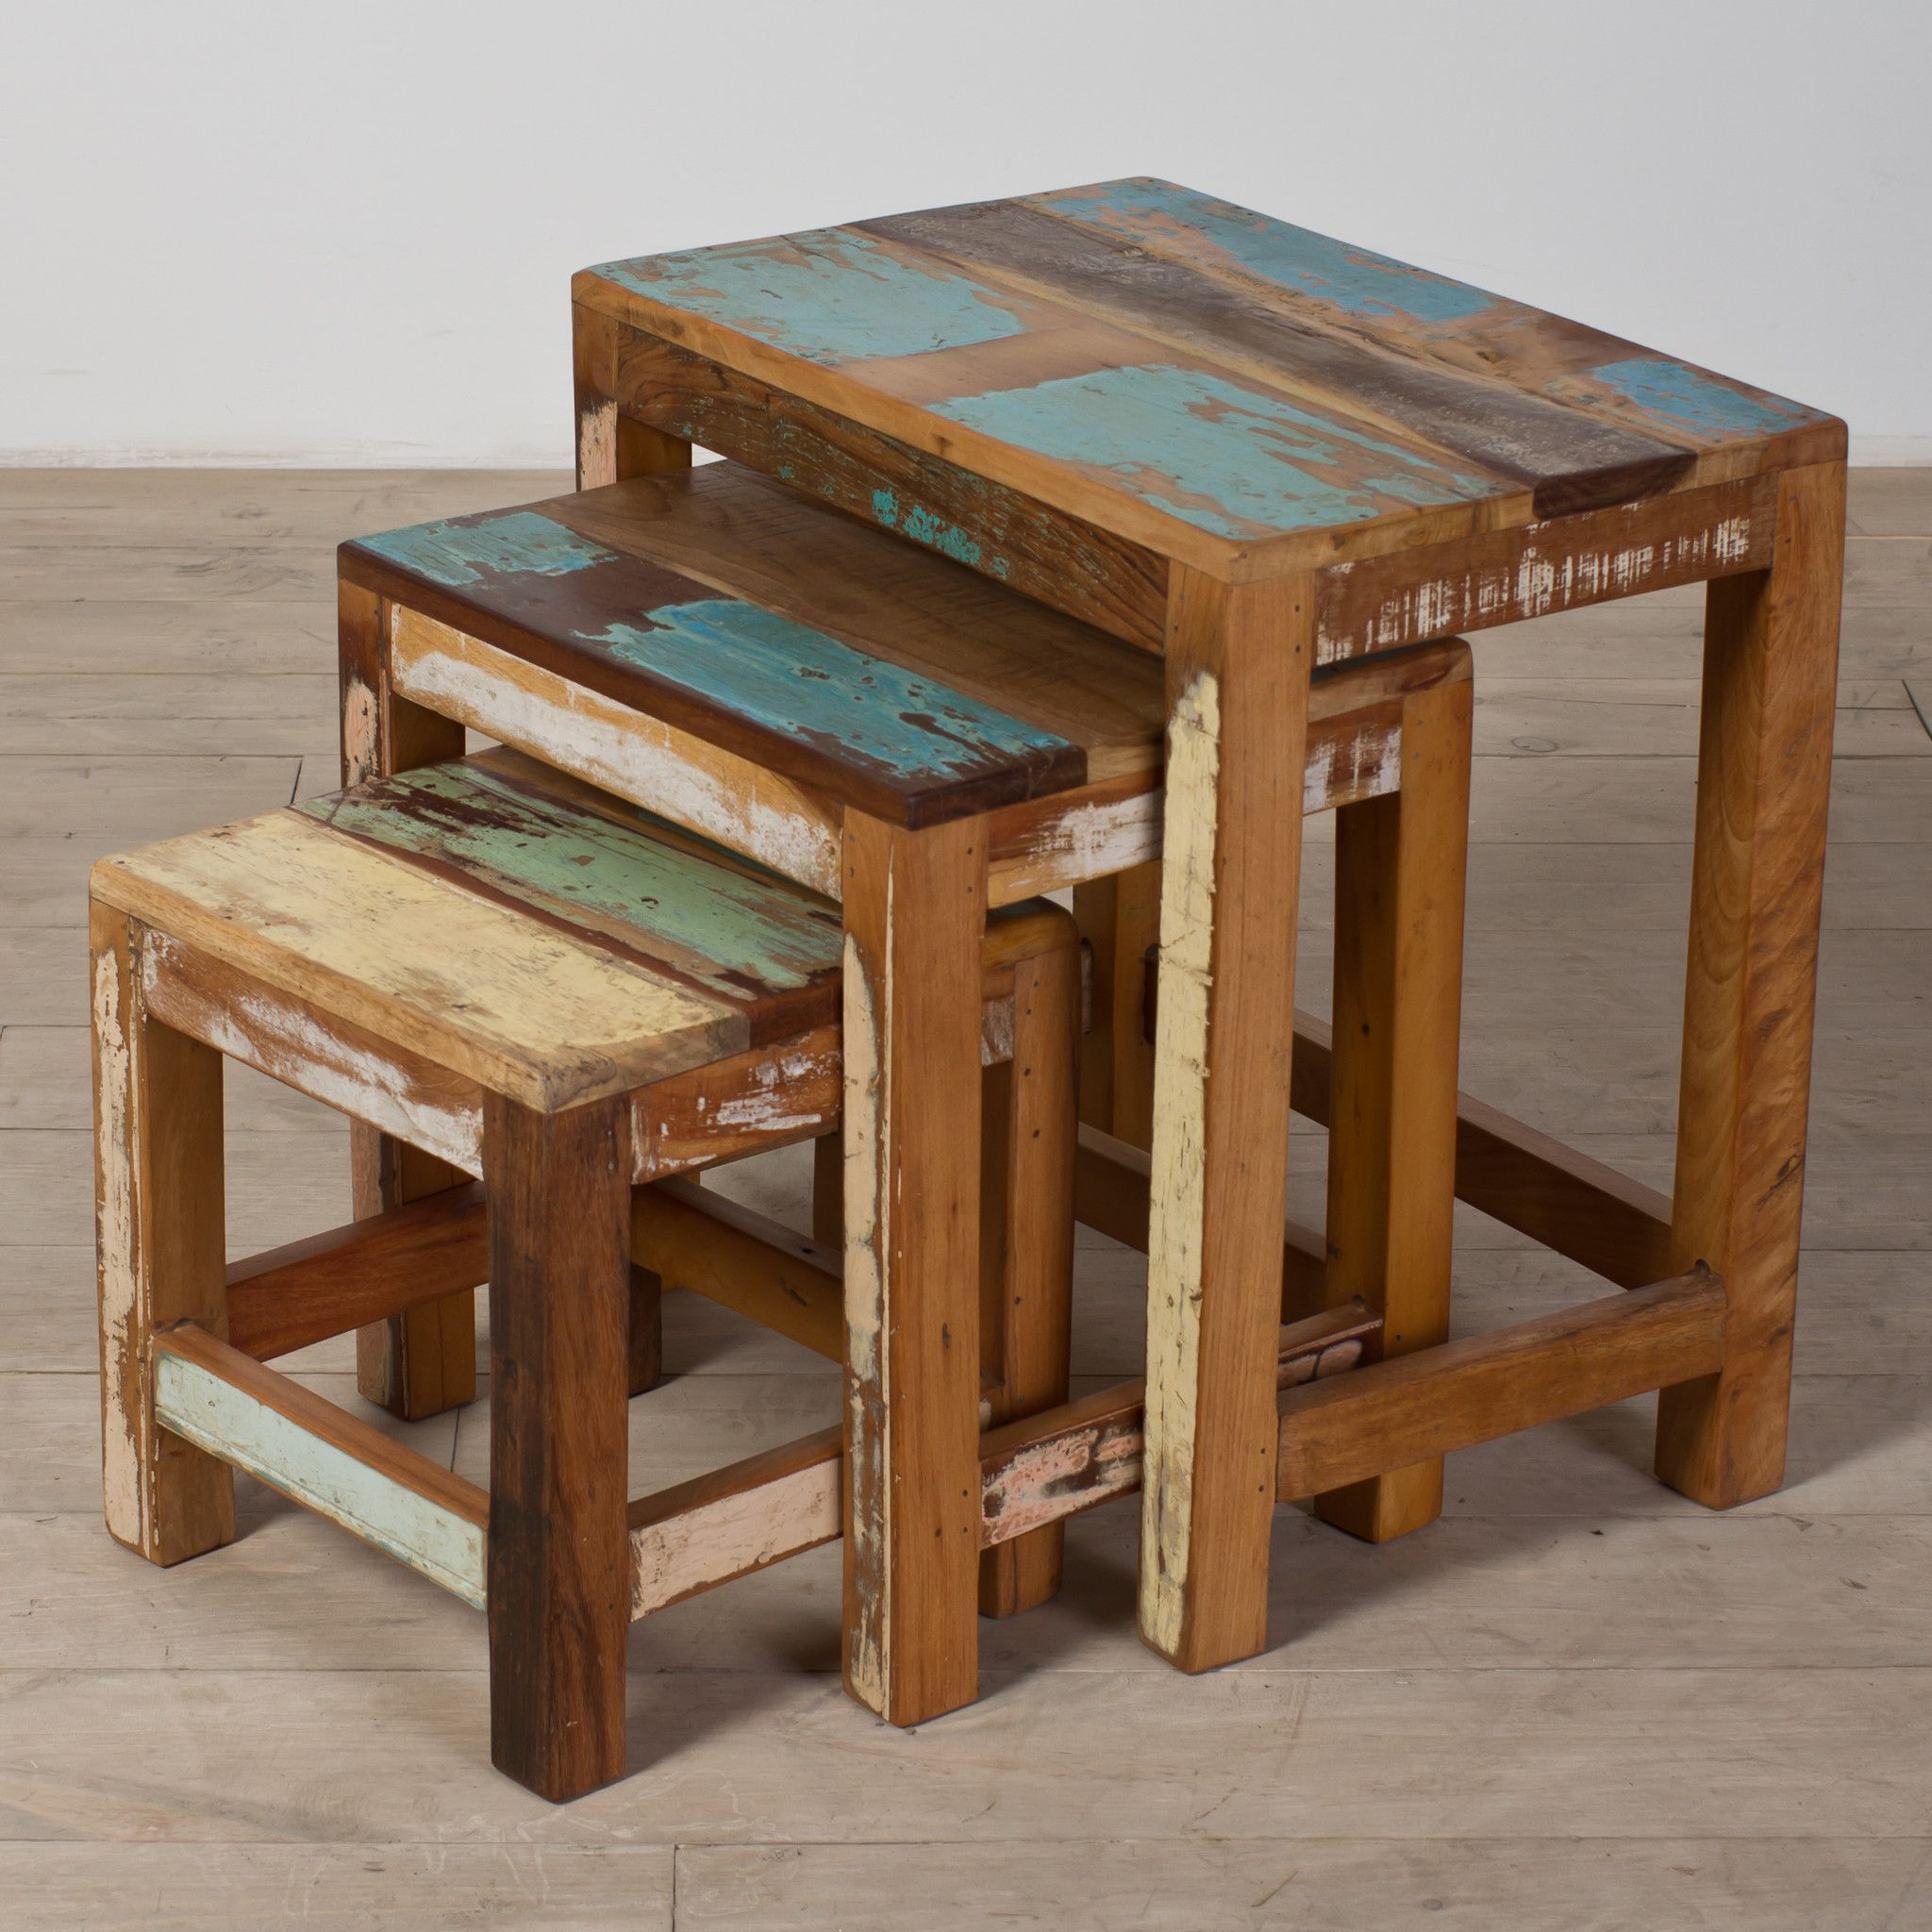 Furniture With Soul These Unique Nesting Tables Are Made From Stripped Reclaimed  Wood. They Can